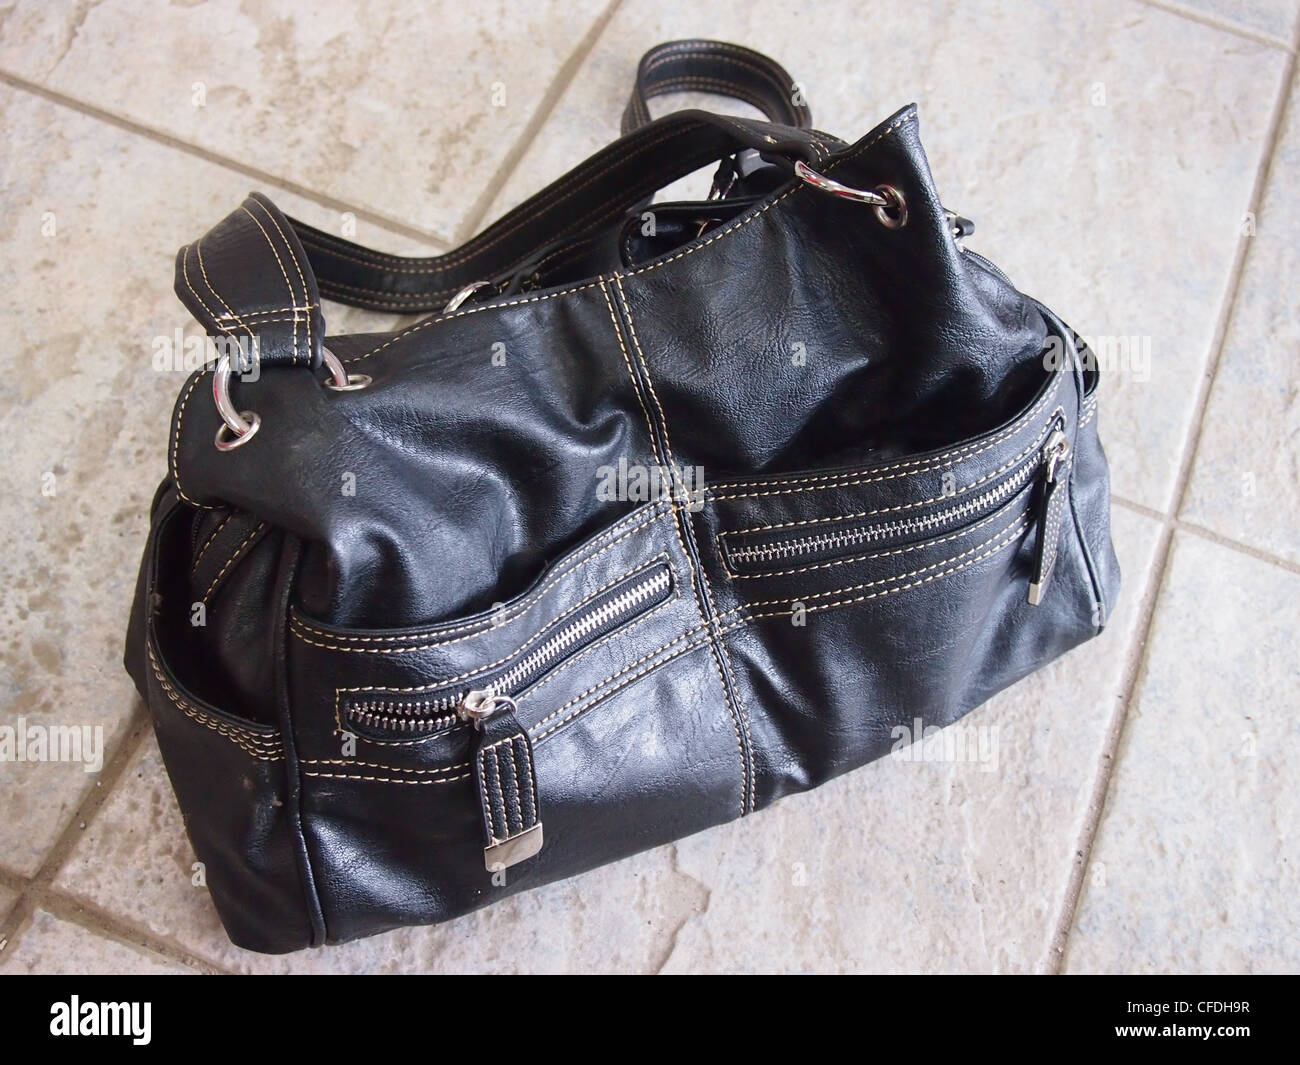 Black leather purse in tile floor - Stock Image